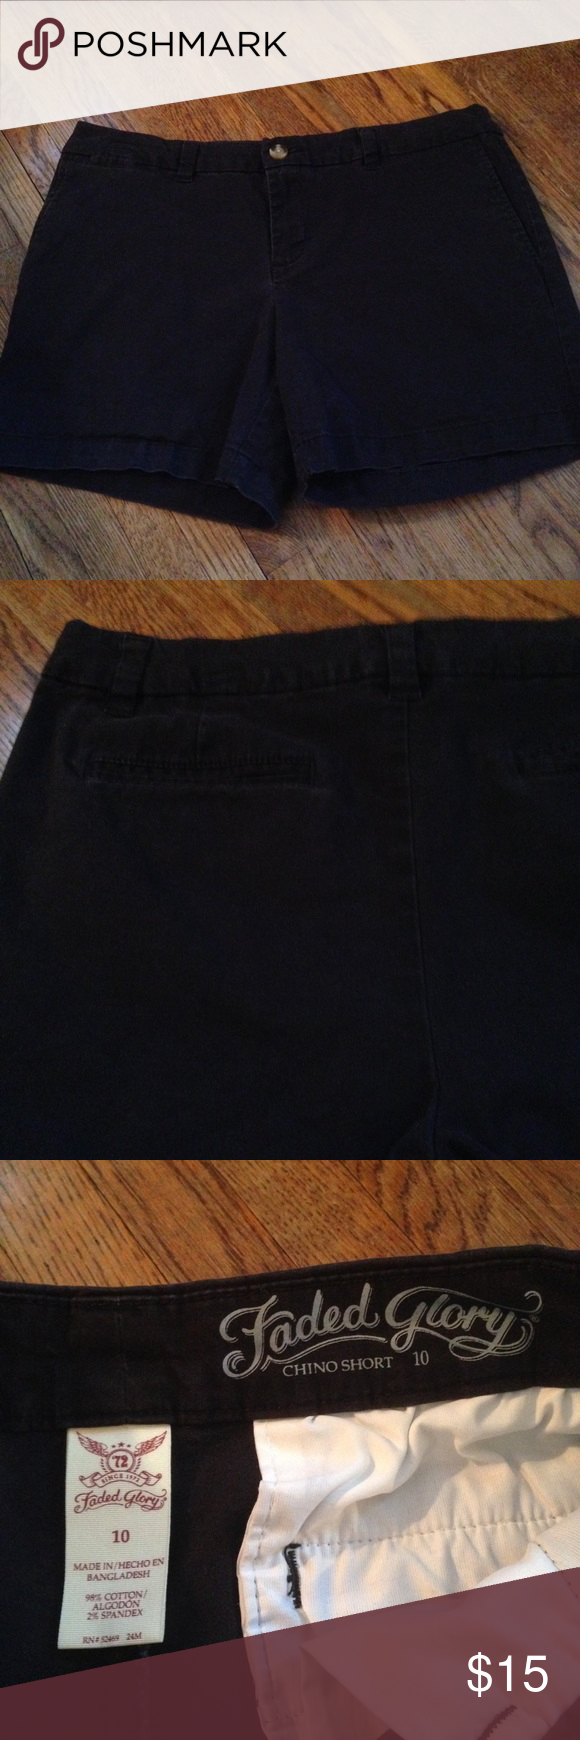 LBlack chino shorts! These are super cute and a great closet staple! They look great dressed up or down! They have not holes or stains. They come from a smoke free but pet friendly environment! I ship Monday-Friday. I don't hold or trade. Please don't negotiate the price in the comments. I only sell through poshmark. Faded Glory Shorts